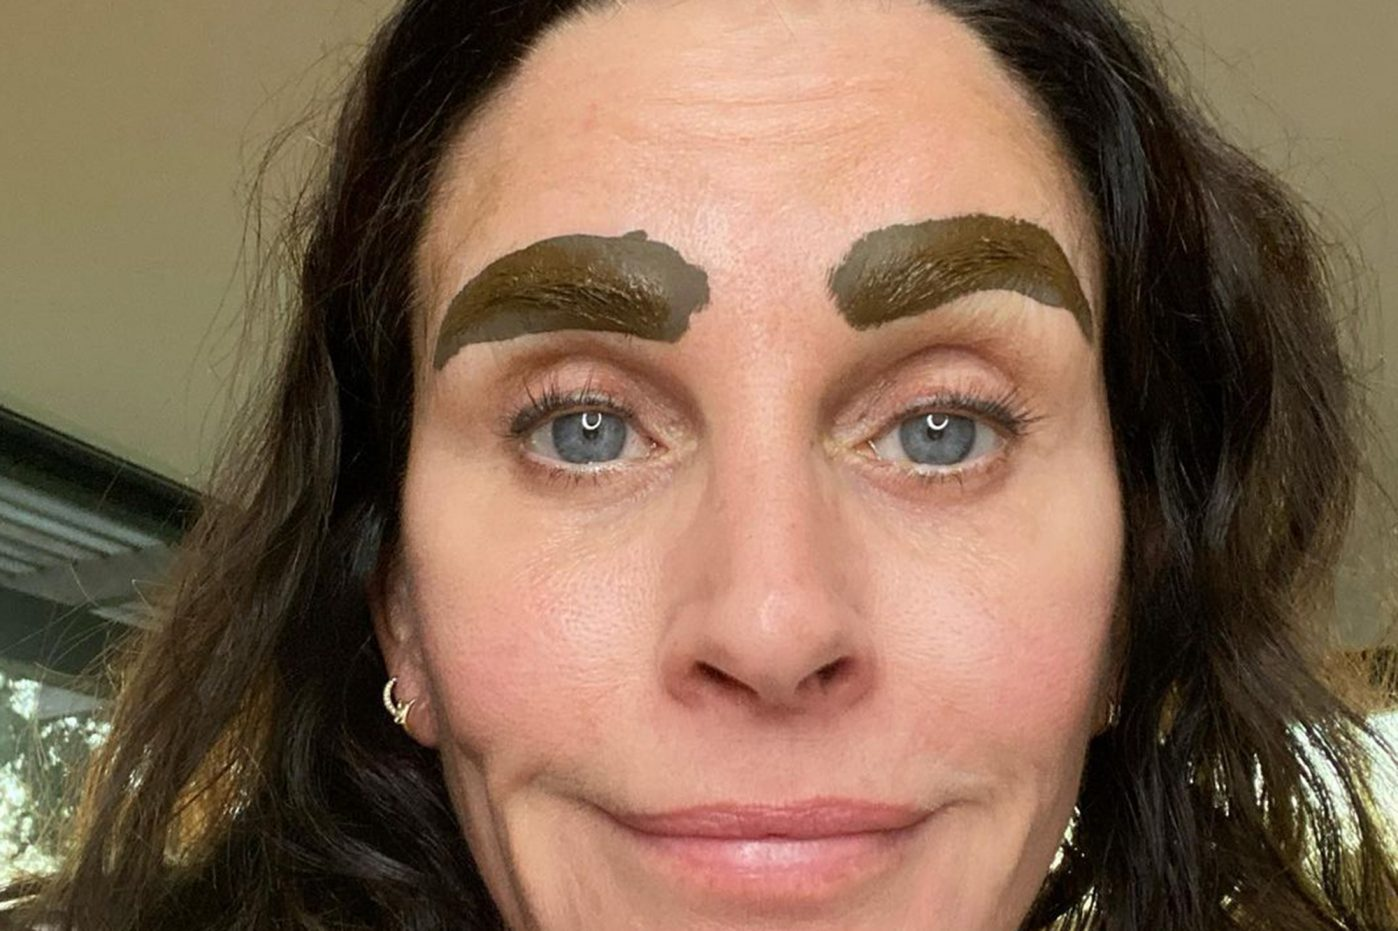 COURTNEY COX, THE FRIENDS' FRIEND WITH THE MICRO-BLADED EYEBROWS